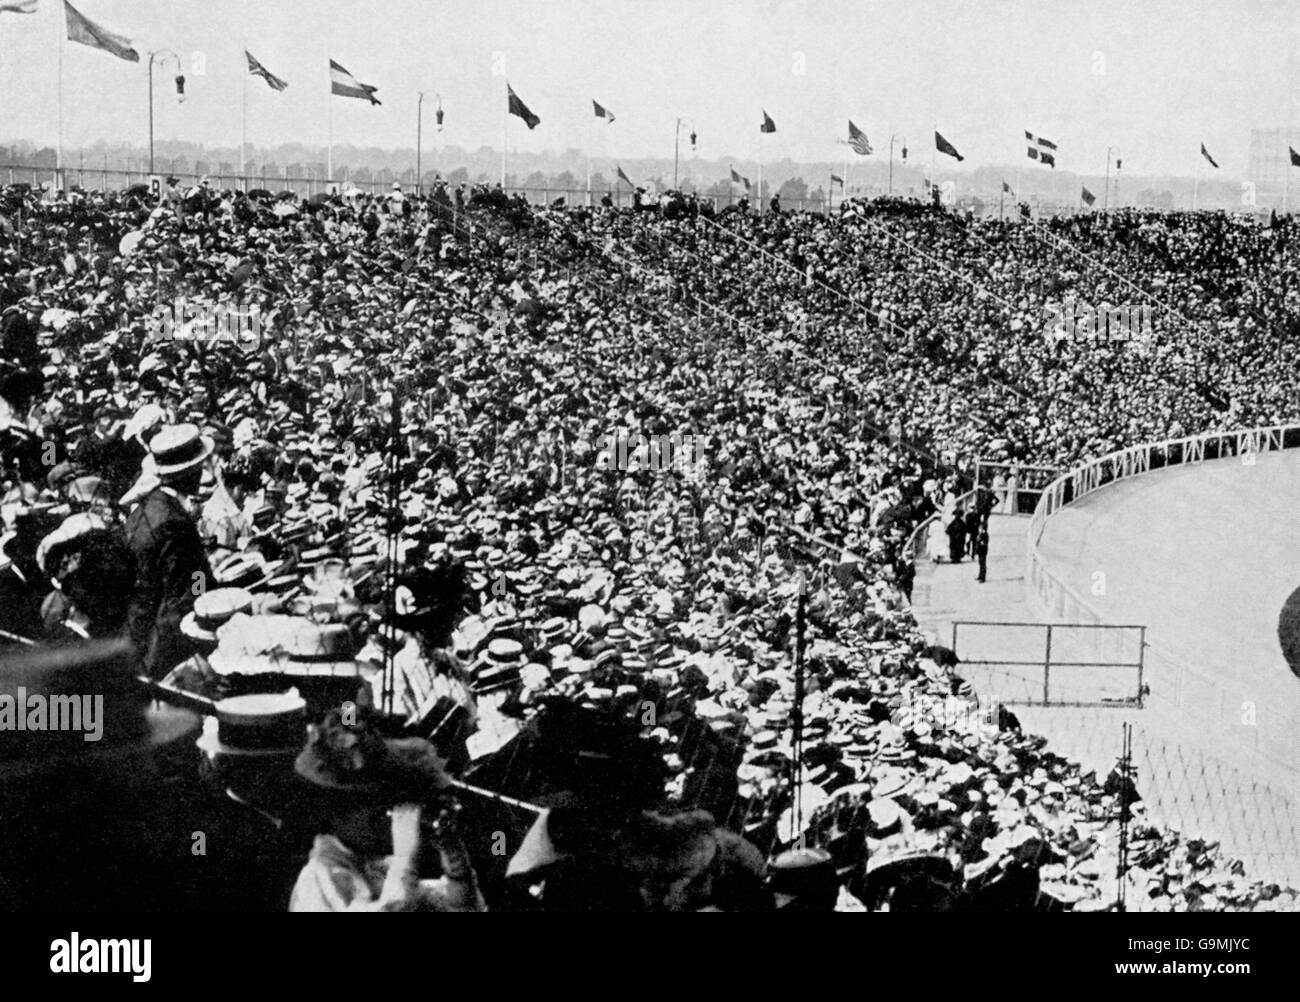 London Olympic Games 1908 - White City - Stock Image